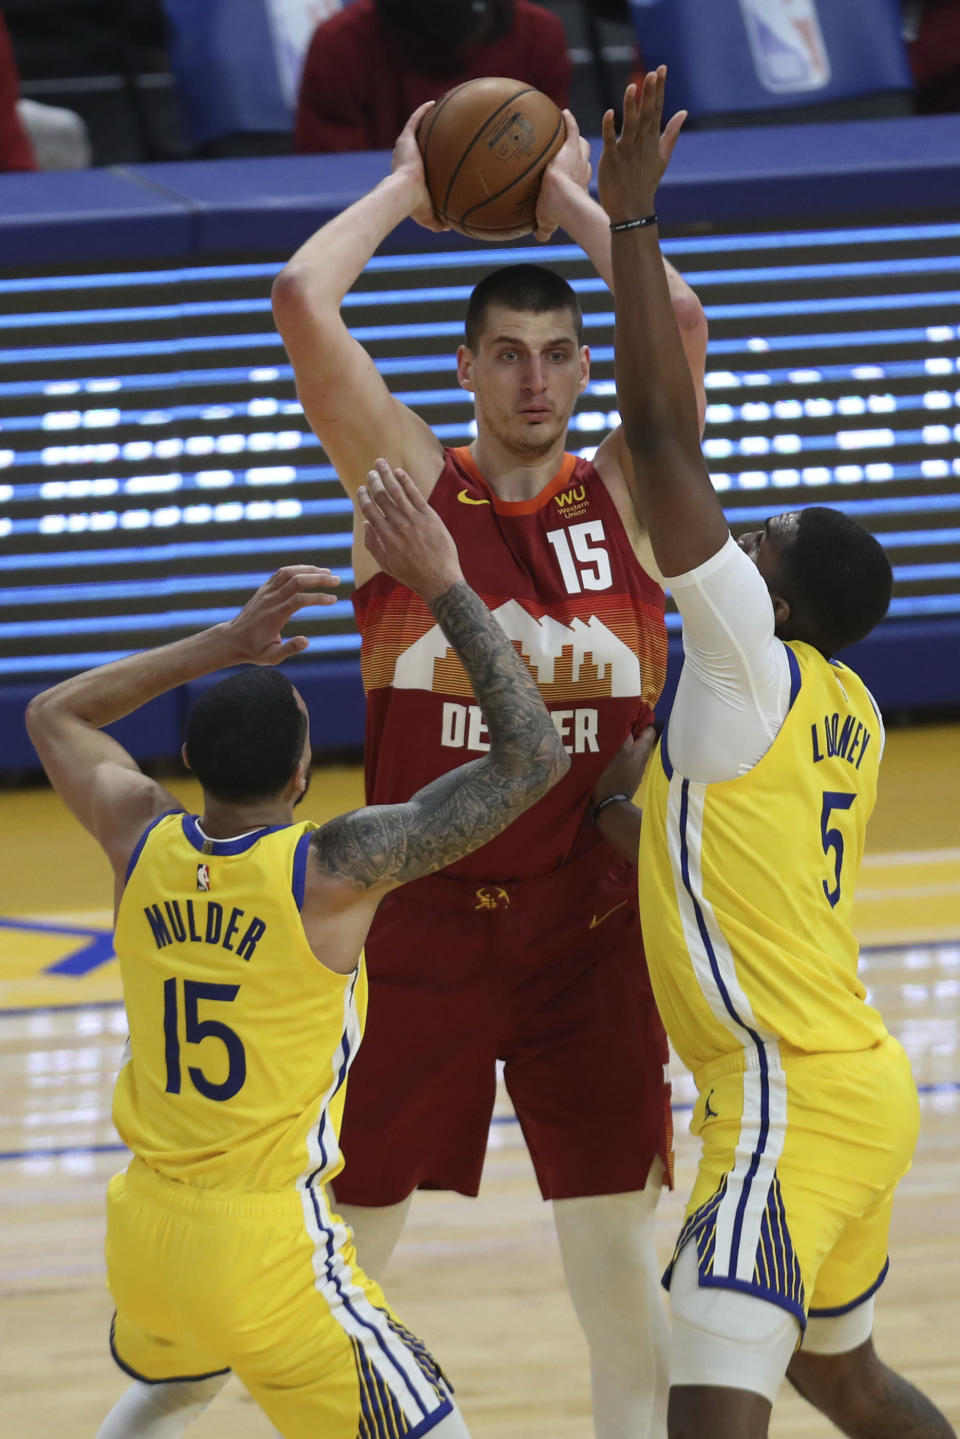 Golden State Warriors' Mychal Mulder, left, and Kevon Looney defend against Denver Nuggets' Nikola Jokic during the first half of an NBA basketball game in San Francisco, Friday, April 23, 2021. (AP Photo/Jed Jacobsohn)